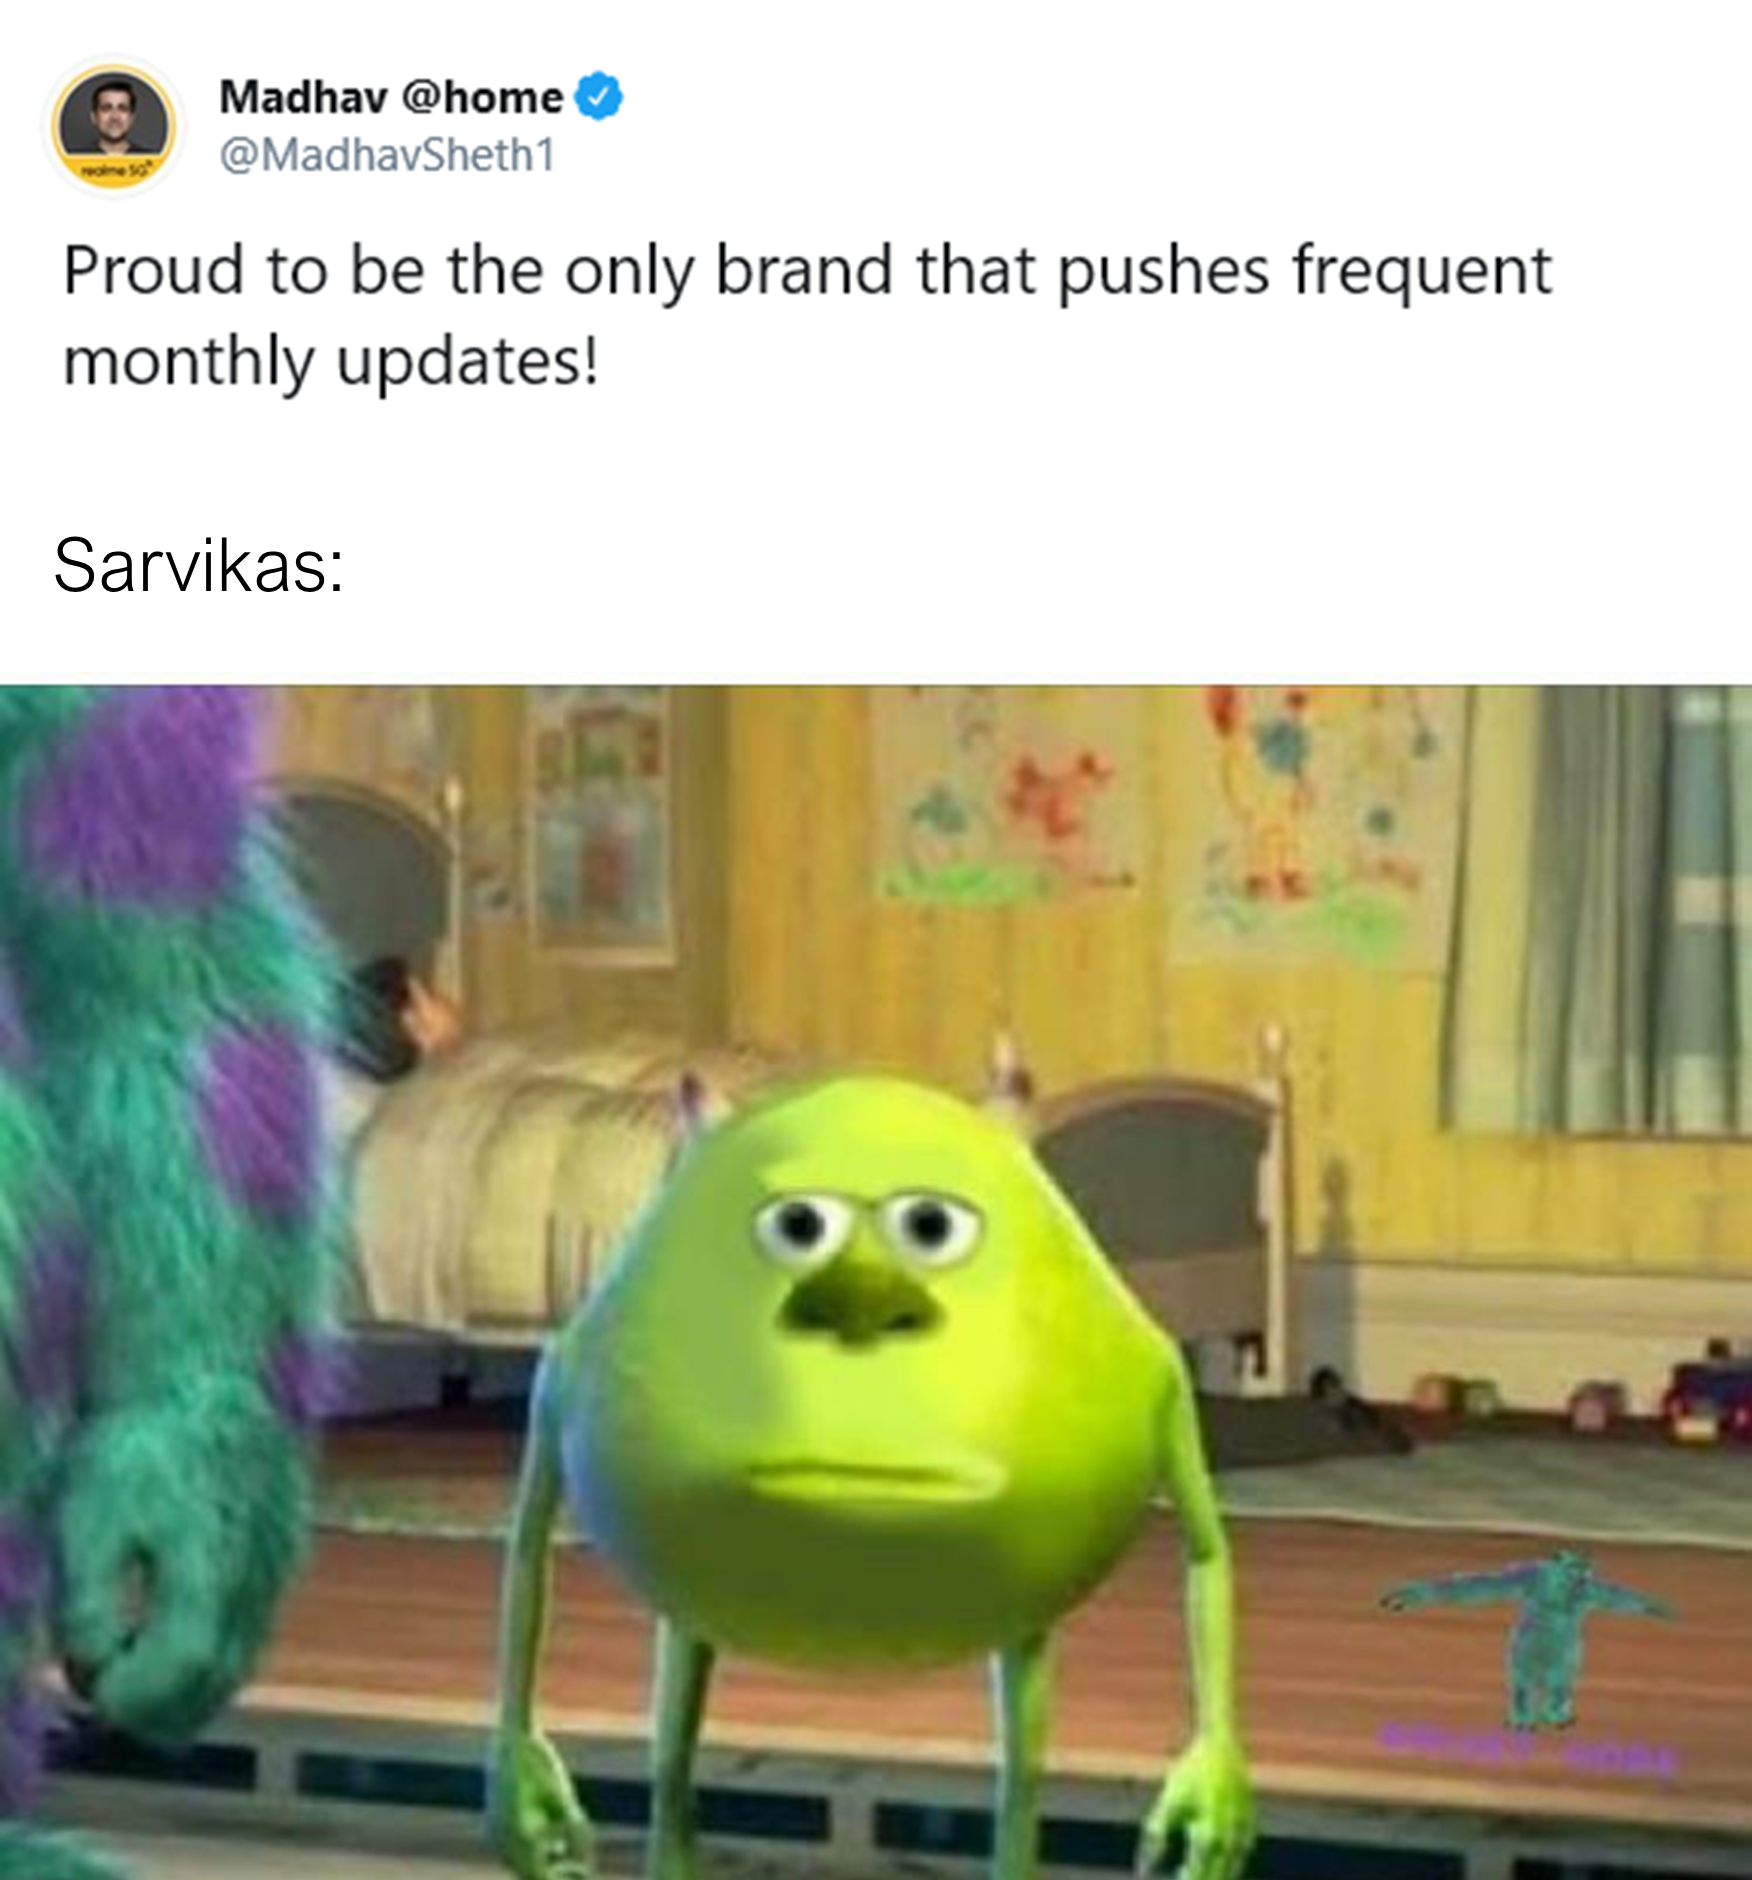 """Realme exec: """"Proud to be the only brand that pushes frequent monthly updates!"""" Sarvikas: *Sully's disbelief face edited on Mike Wazowski's face*"""